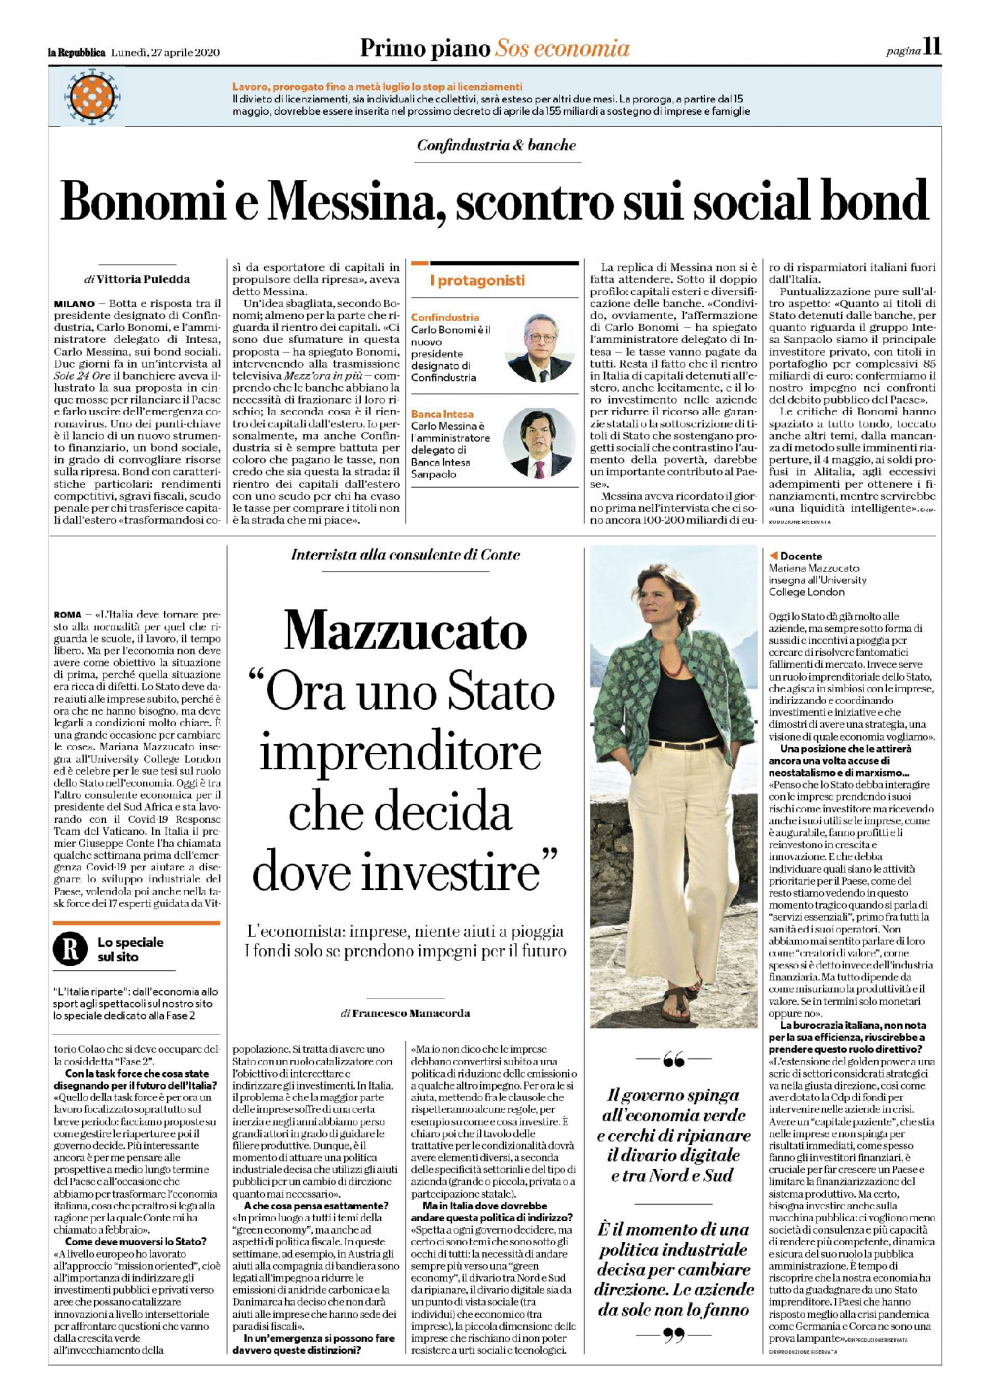 La Repubblica_interview_spread